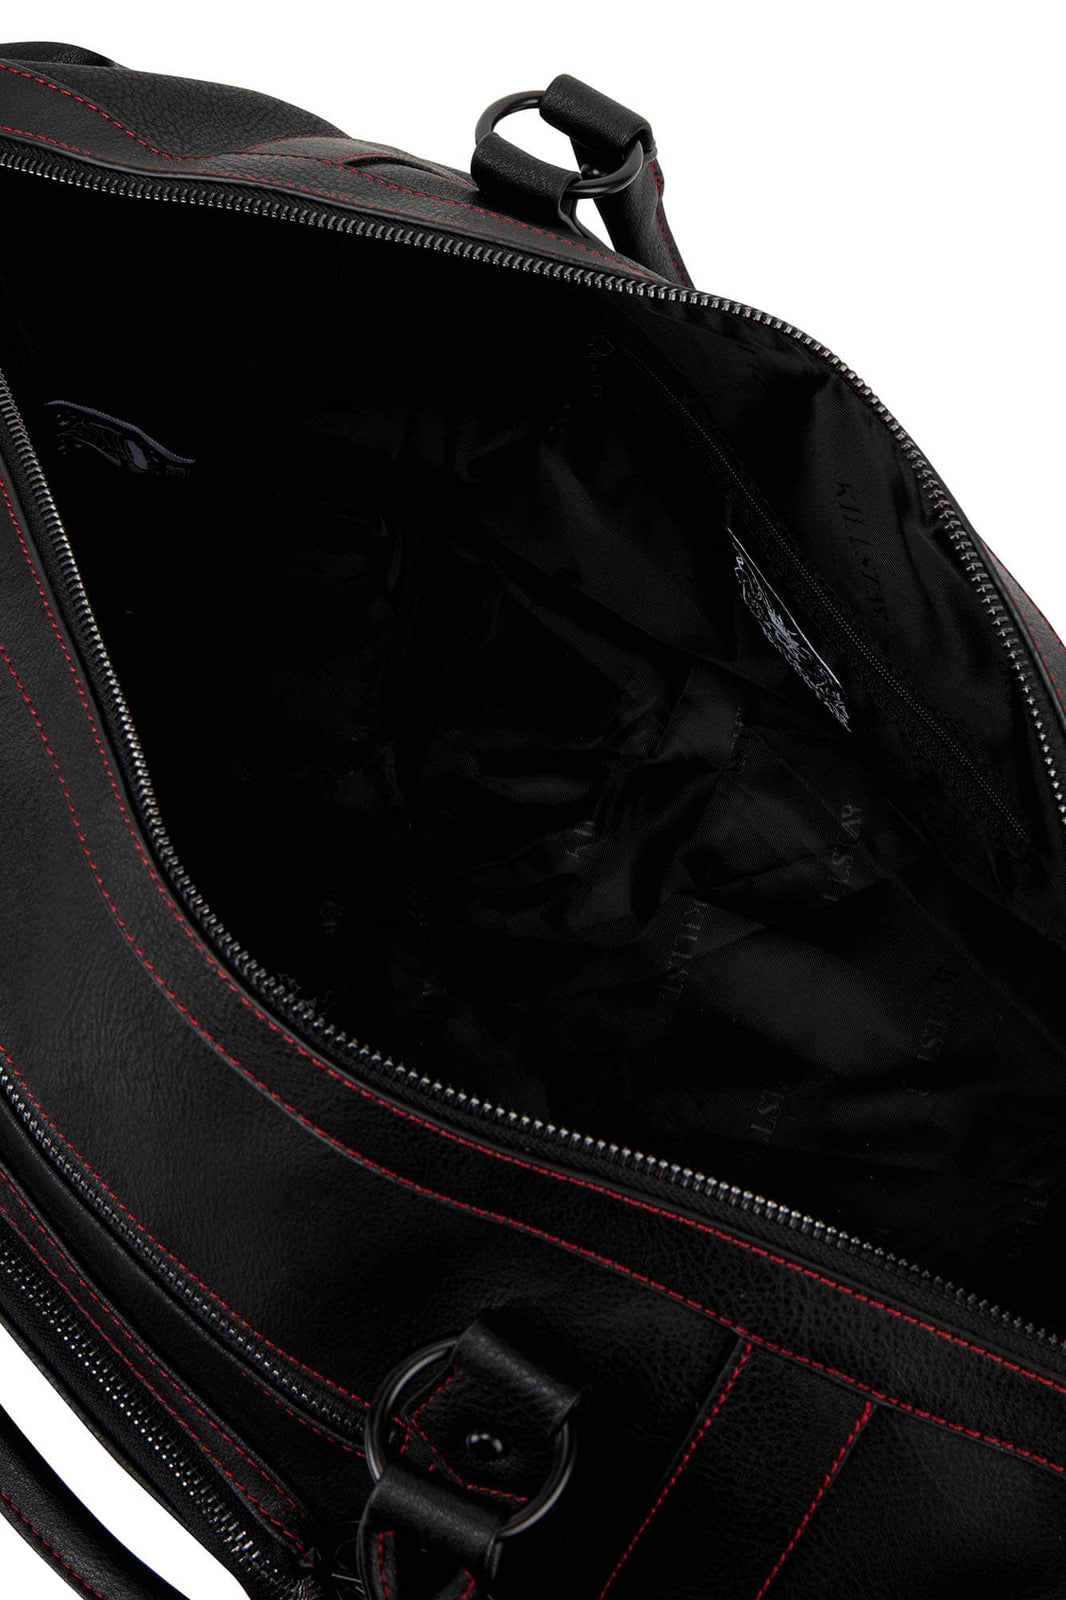 Ozul Duffle Bag